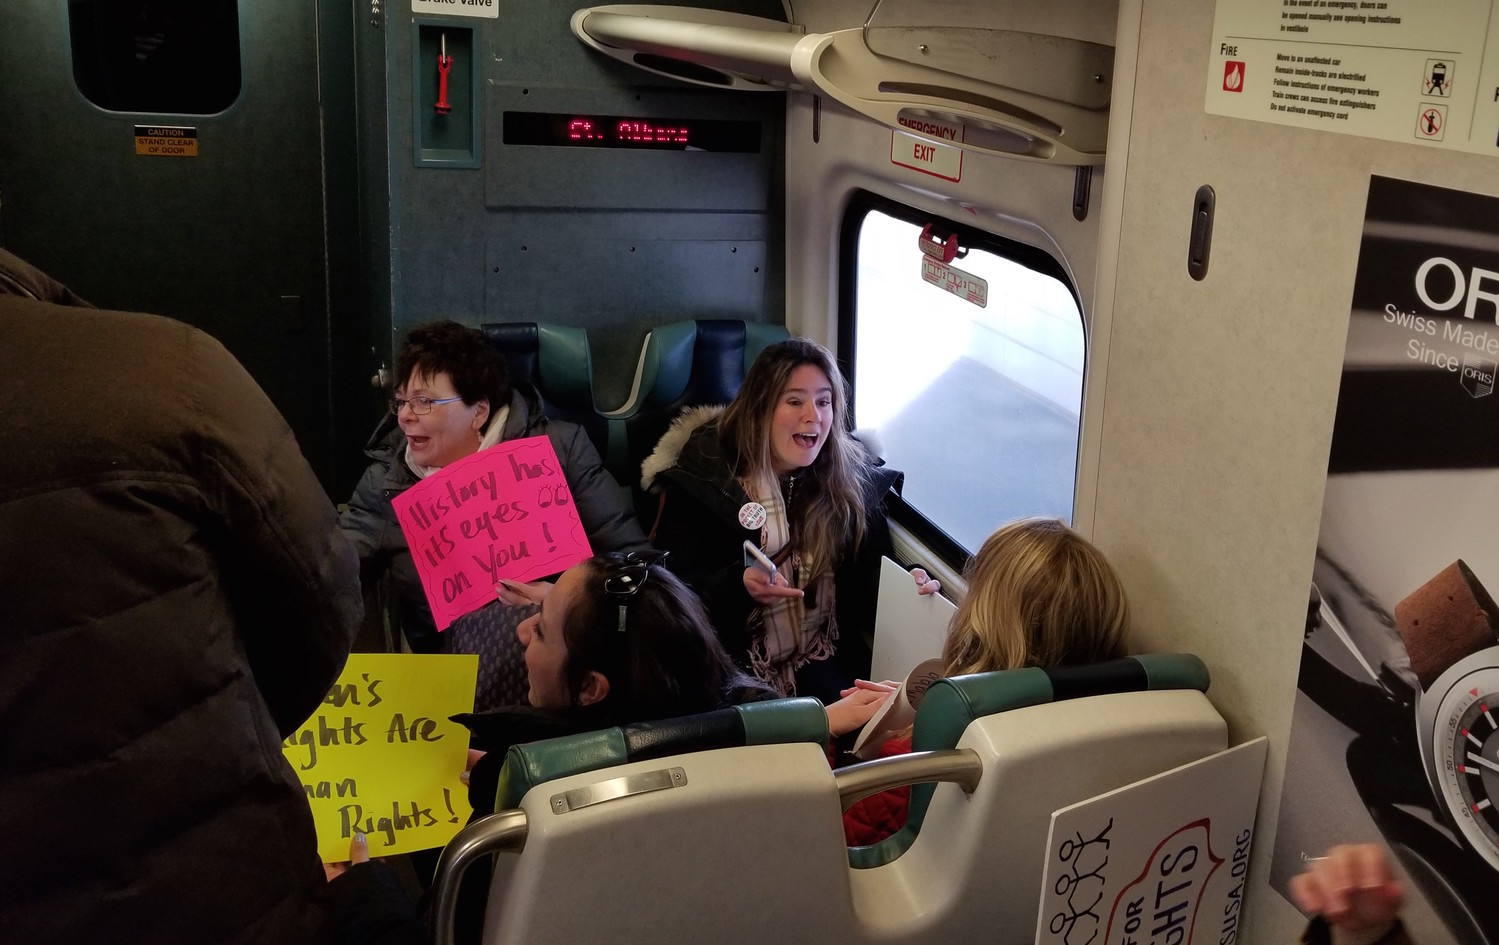 Sheila McDougal brandished her Women's March poster with Jamie Jordan, one of the co-founders of RVC Indivisible, as they rode the Long Island Rail Road into New York City.